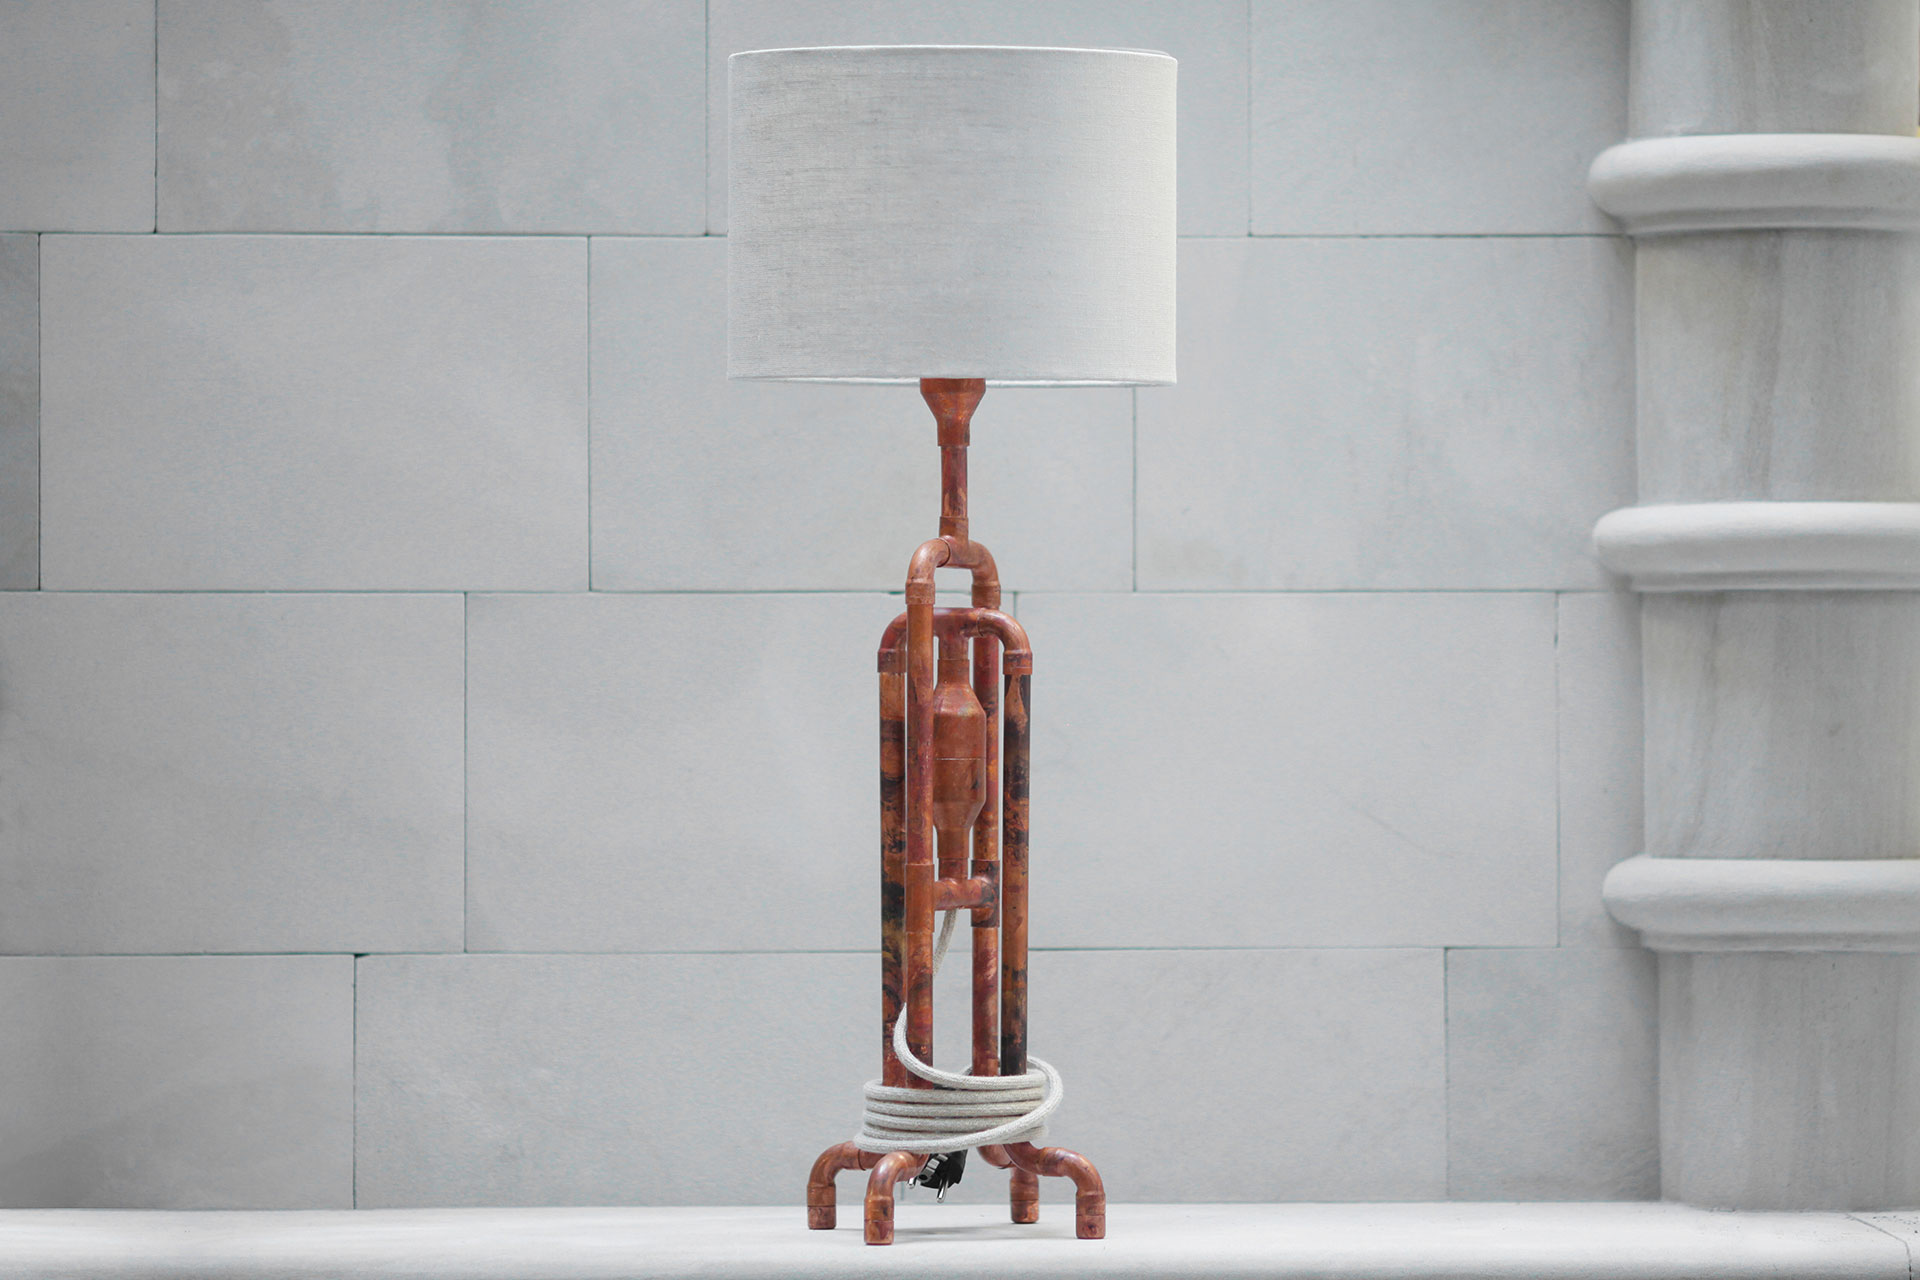 Designer table lamp in aged copper patina with natural linen shade inspired by loft design